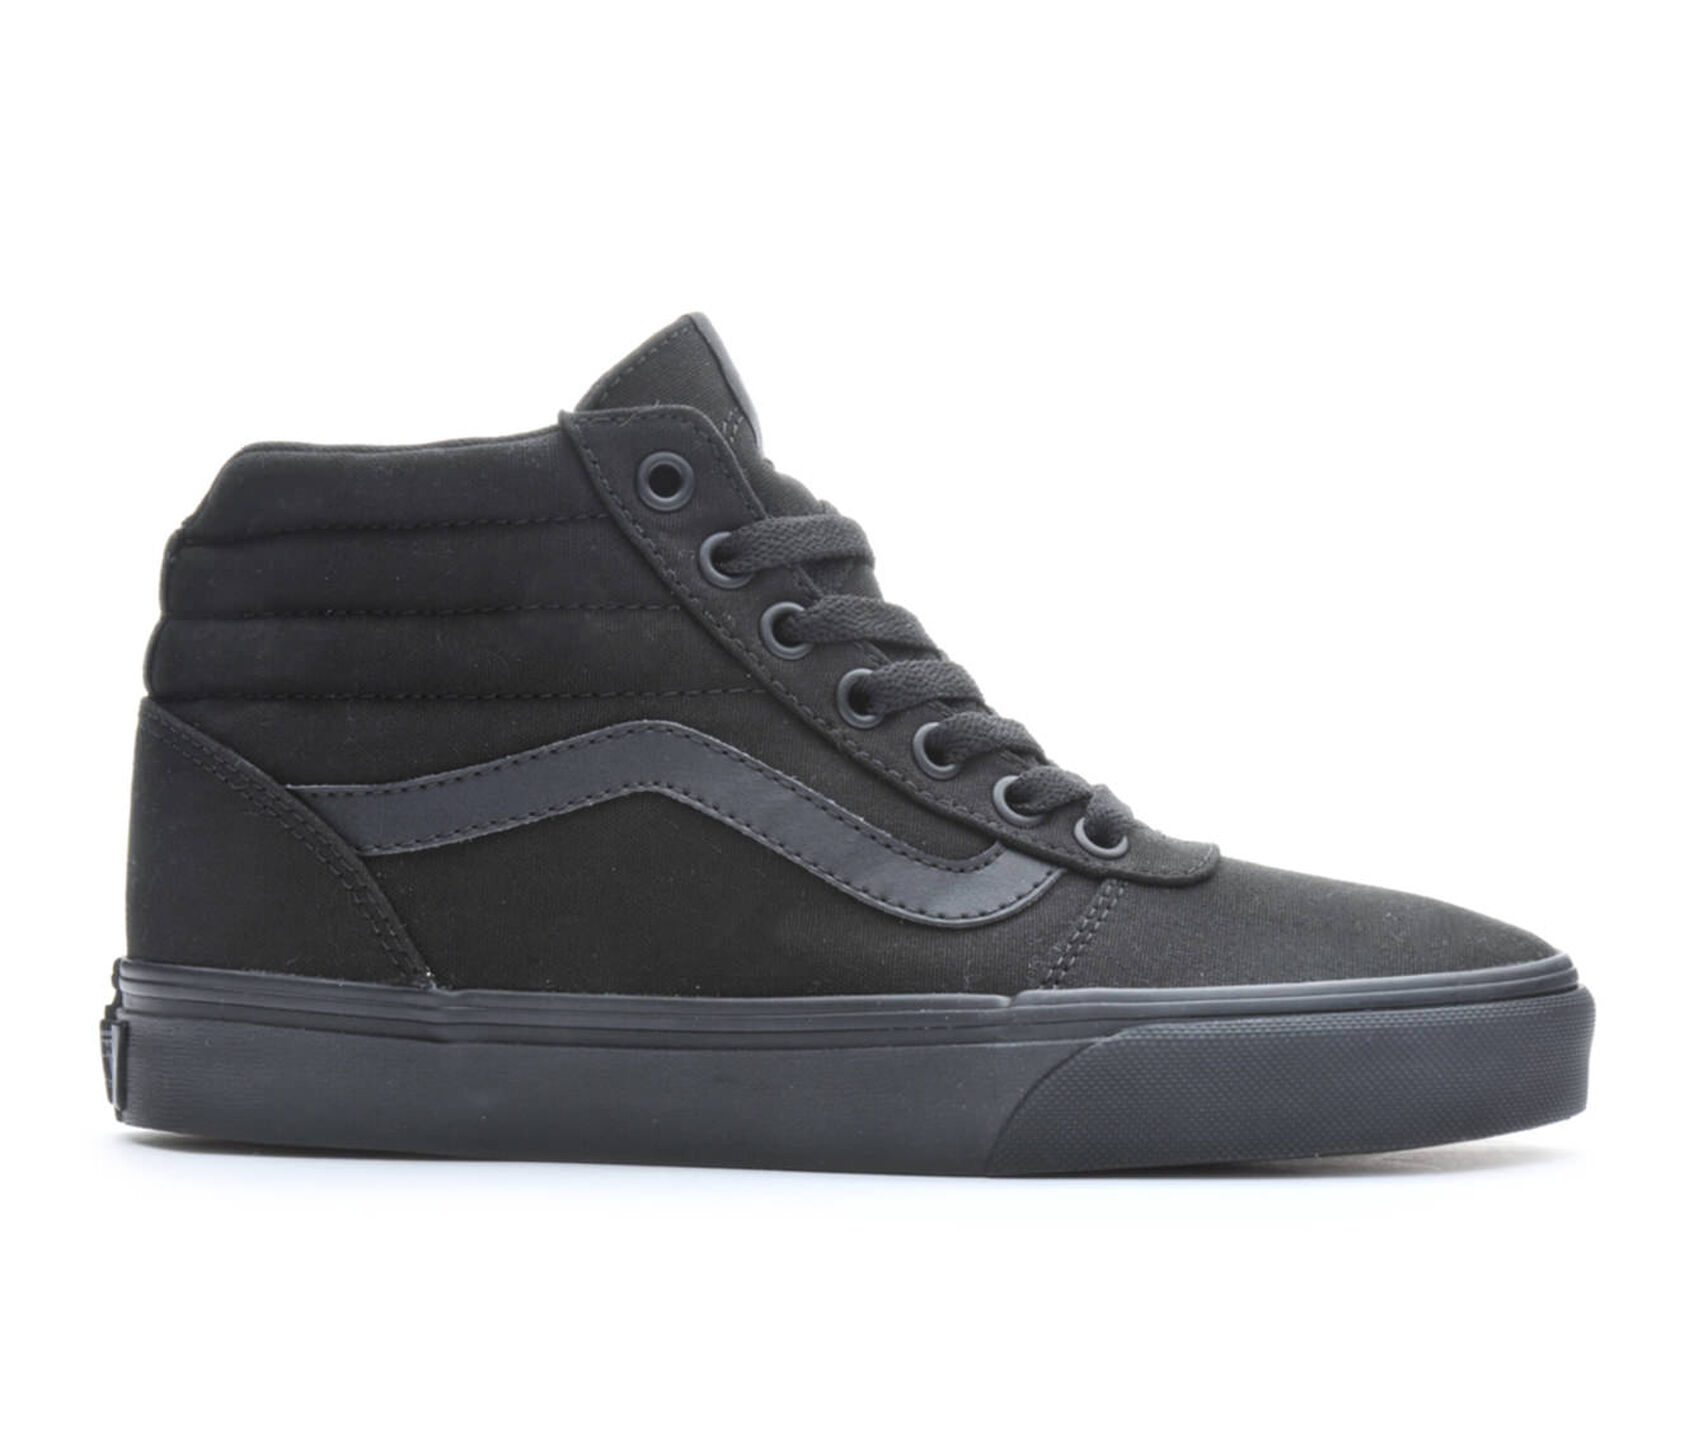 where to buy high top vans